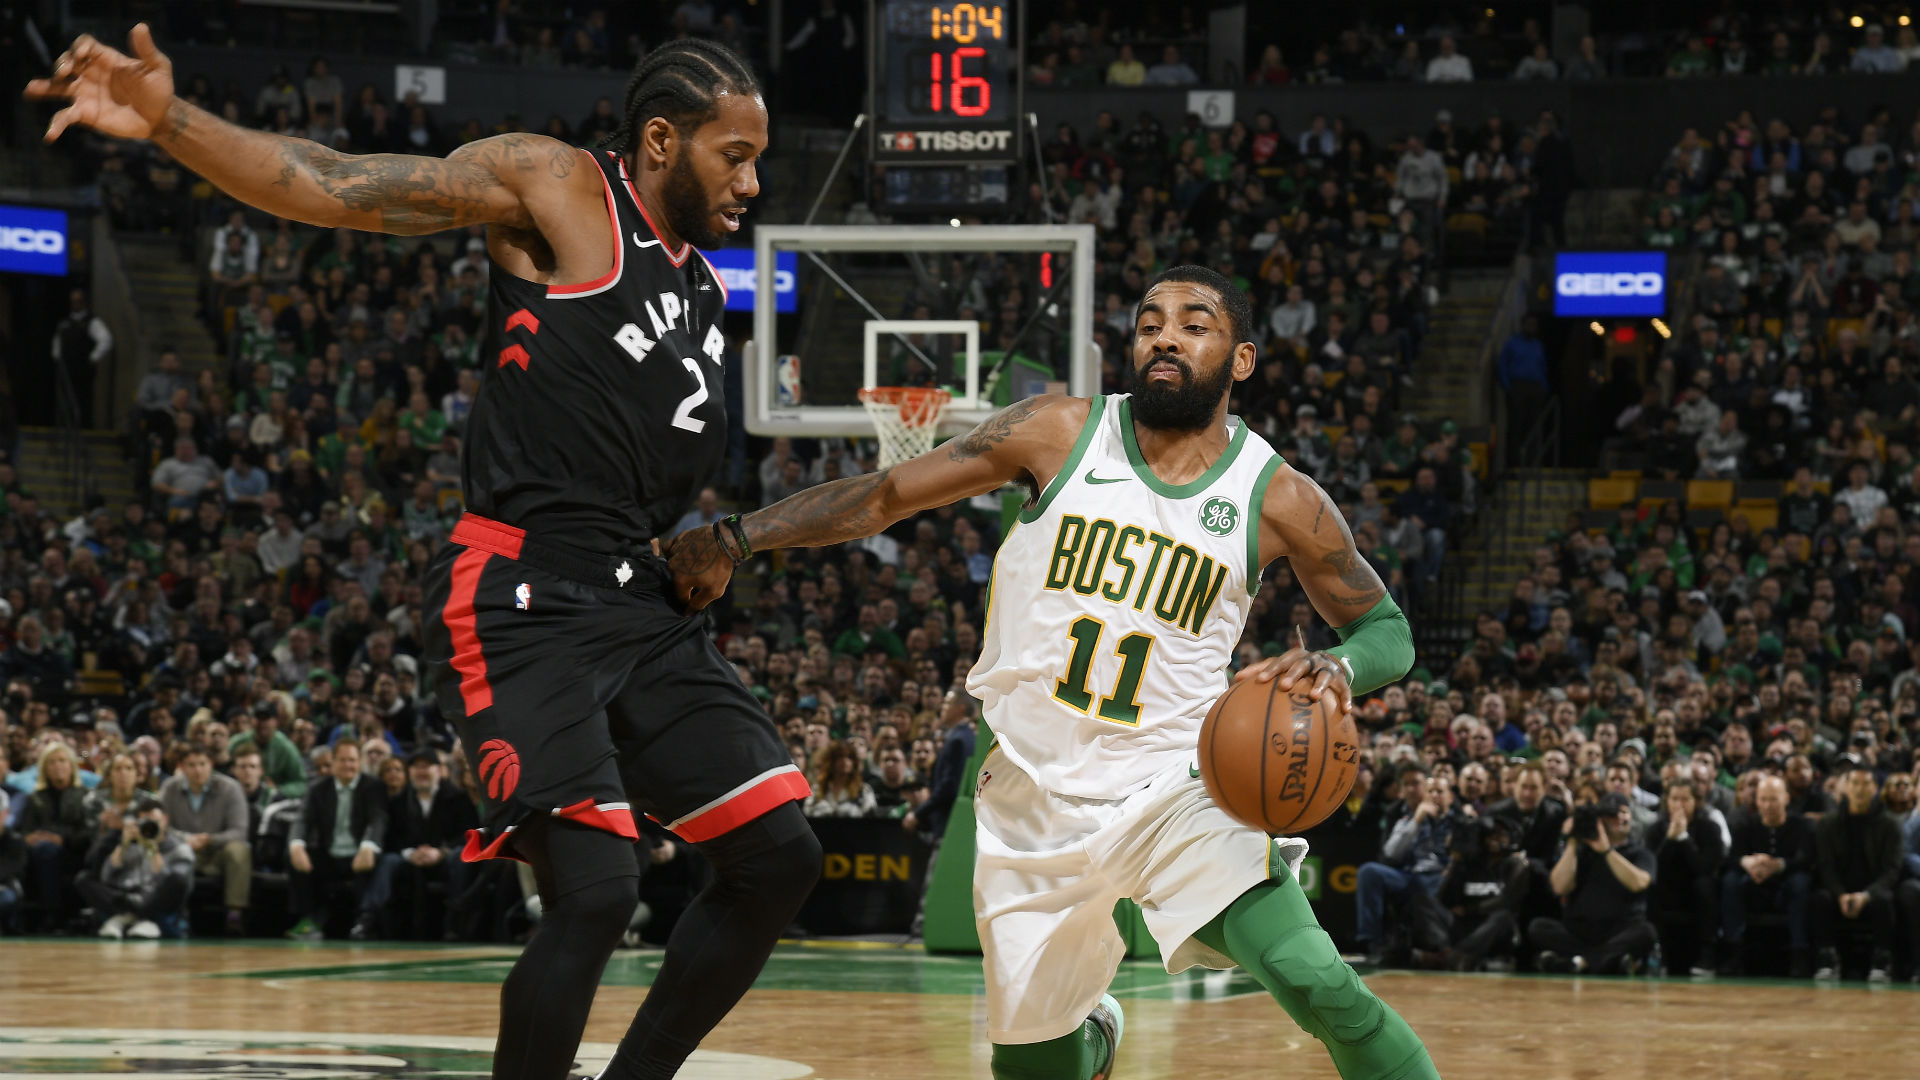 Should Kawhi Leonard spend more time guarding Kyrie Irving?